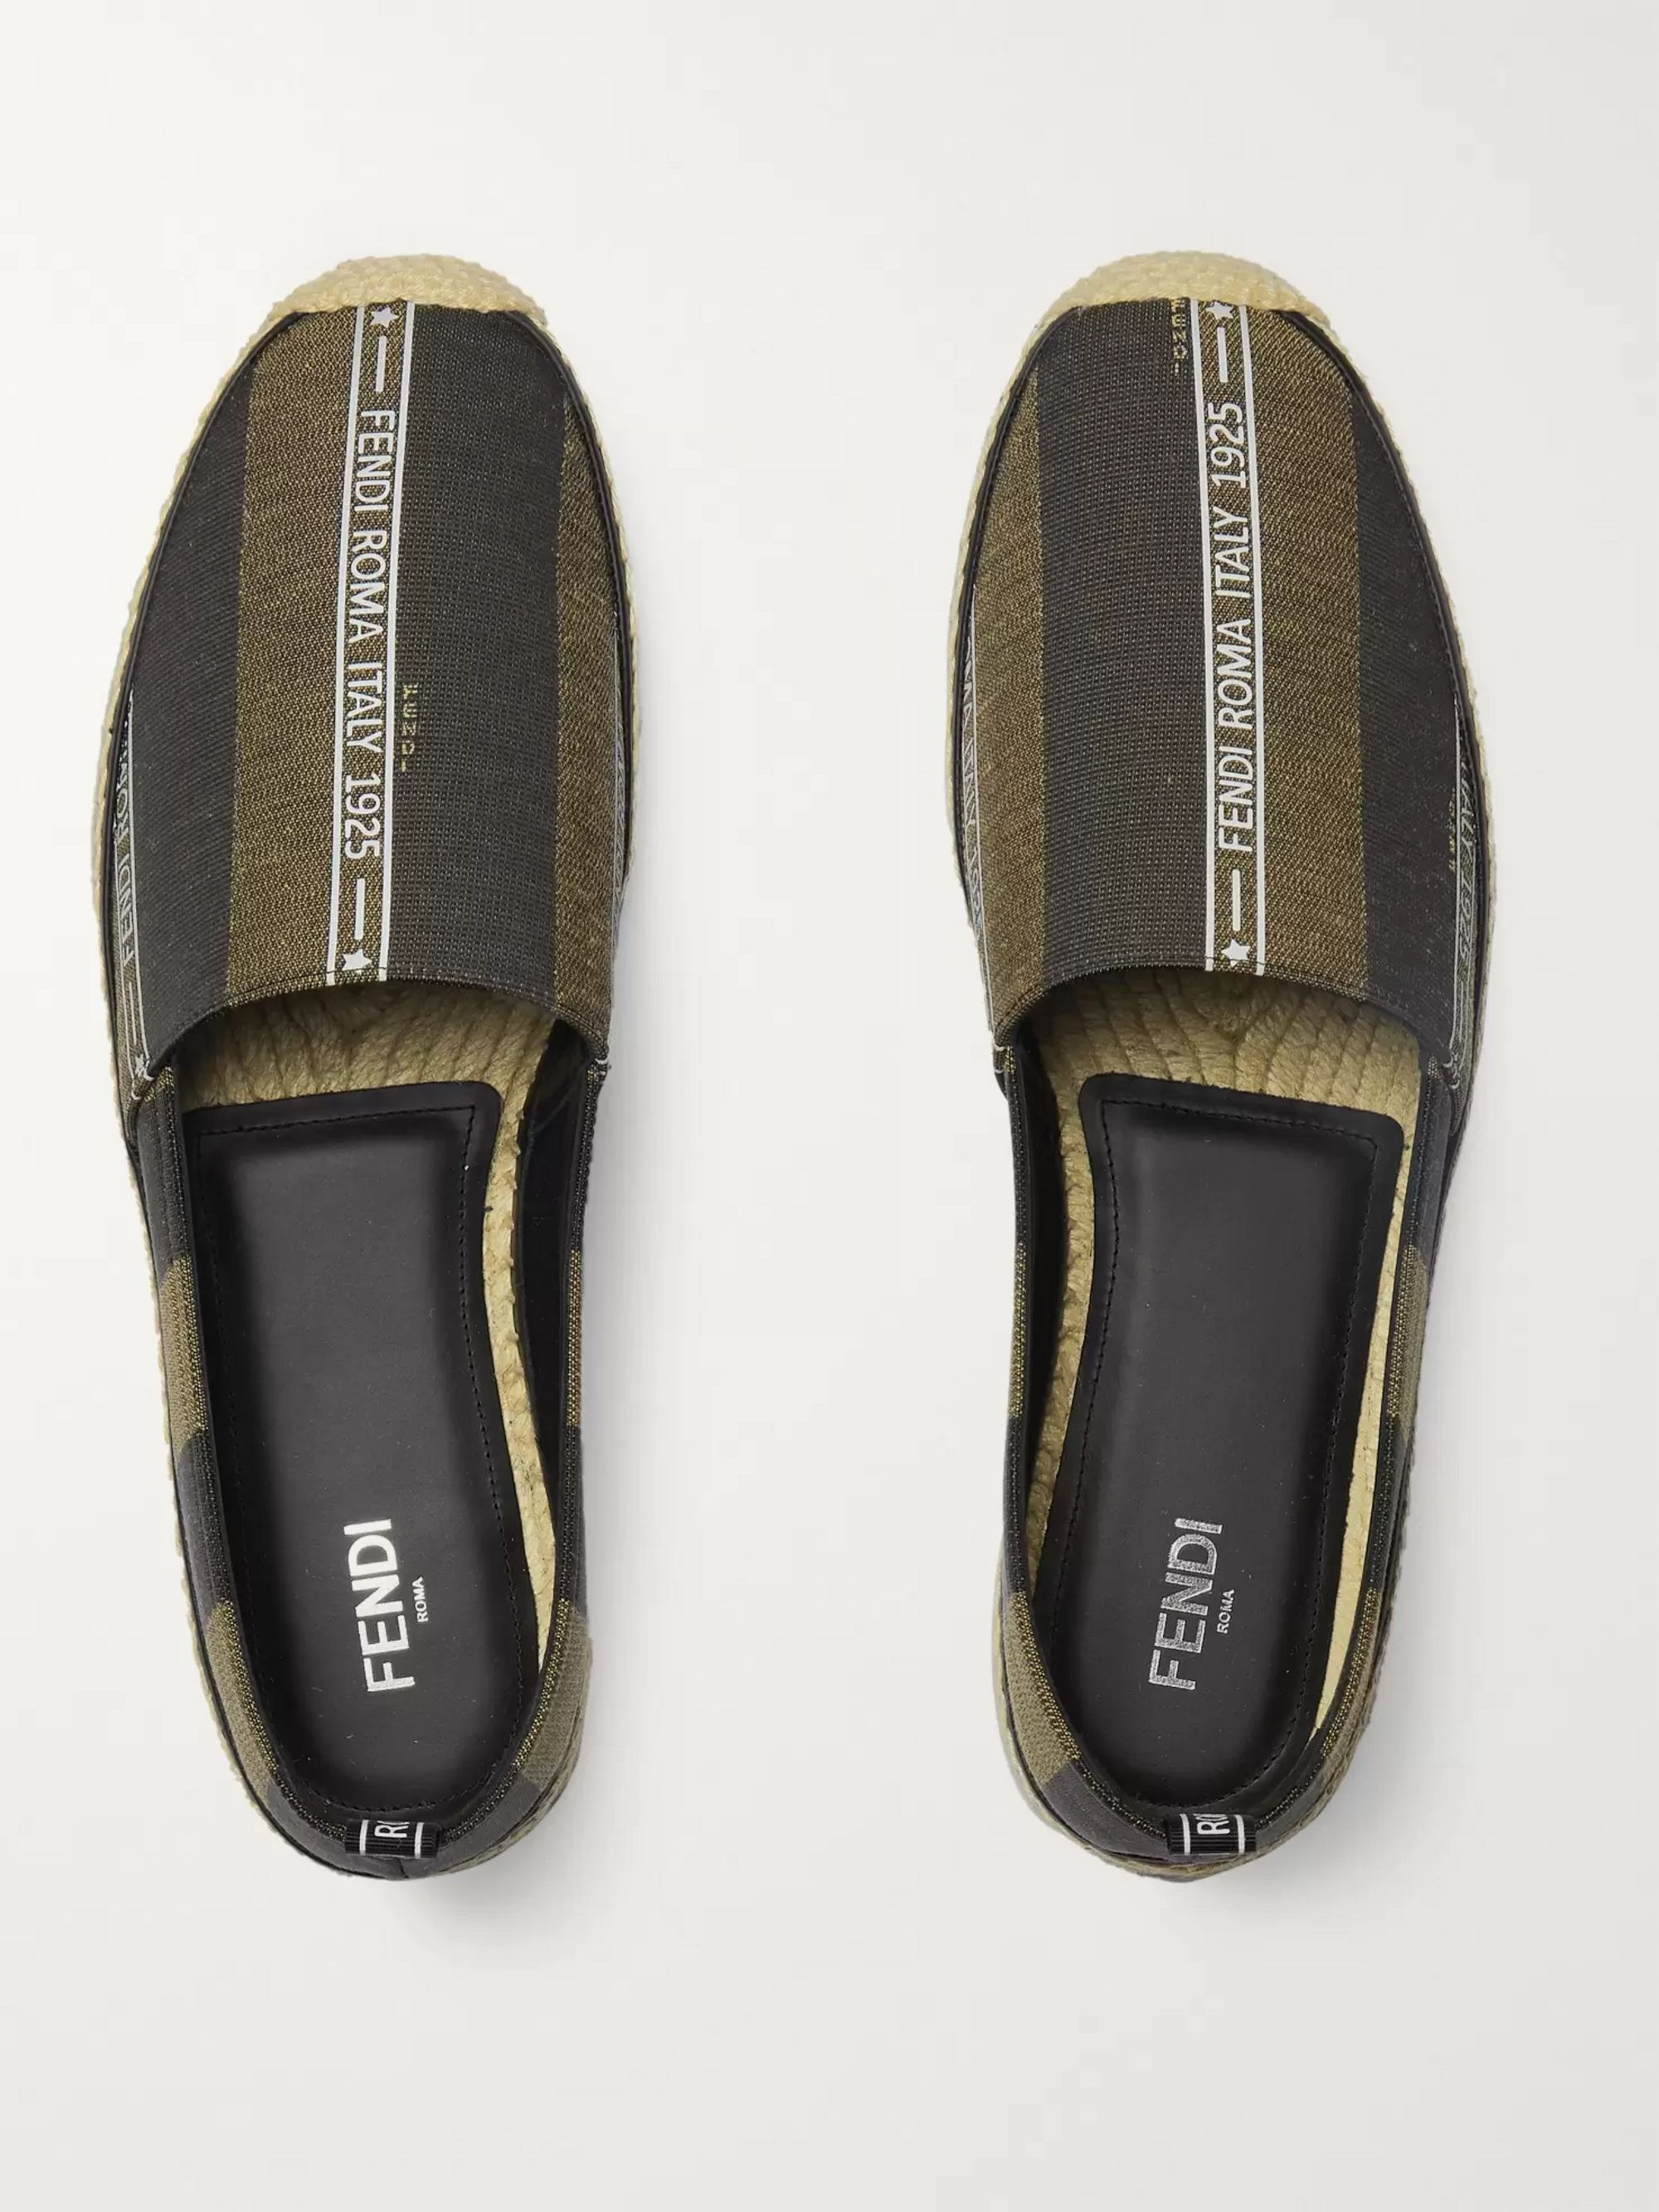 Fendi Reflective Logo-Trimmed Striped Canvas Espadrilles